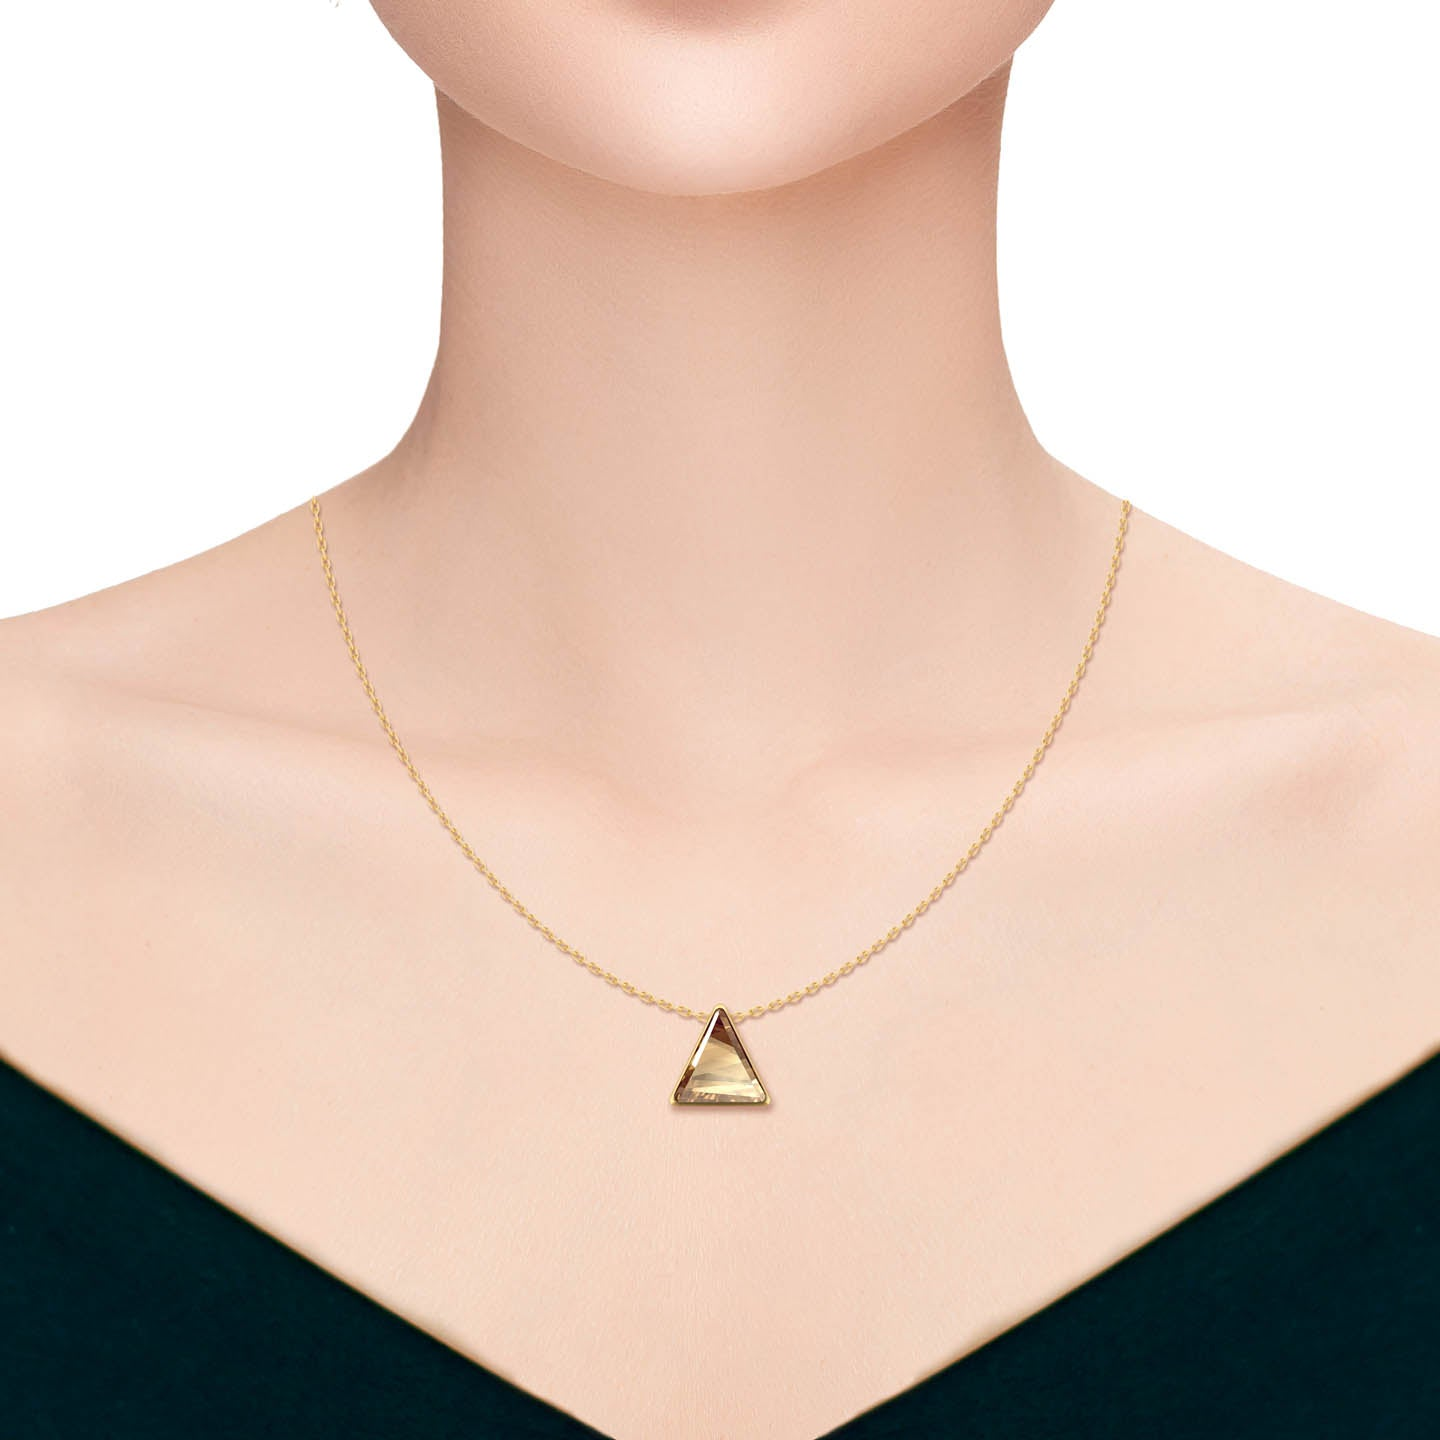 54e2897da0037 Helena Pendant Necklace with Yellow Beige Golden Shadow Triangle Crystals  from Swarovski Gold Plated